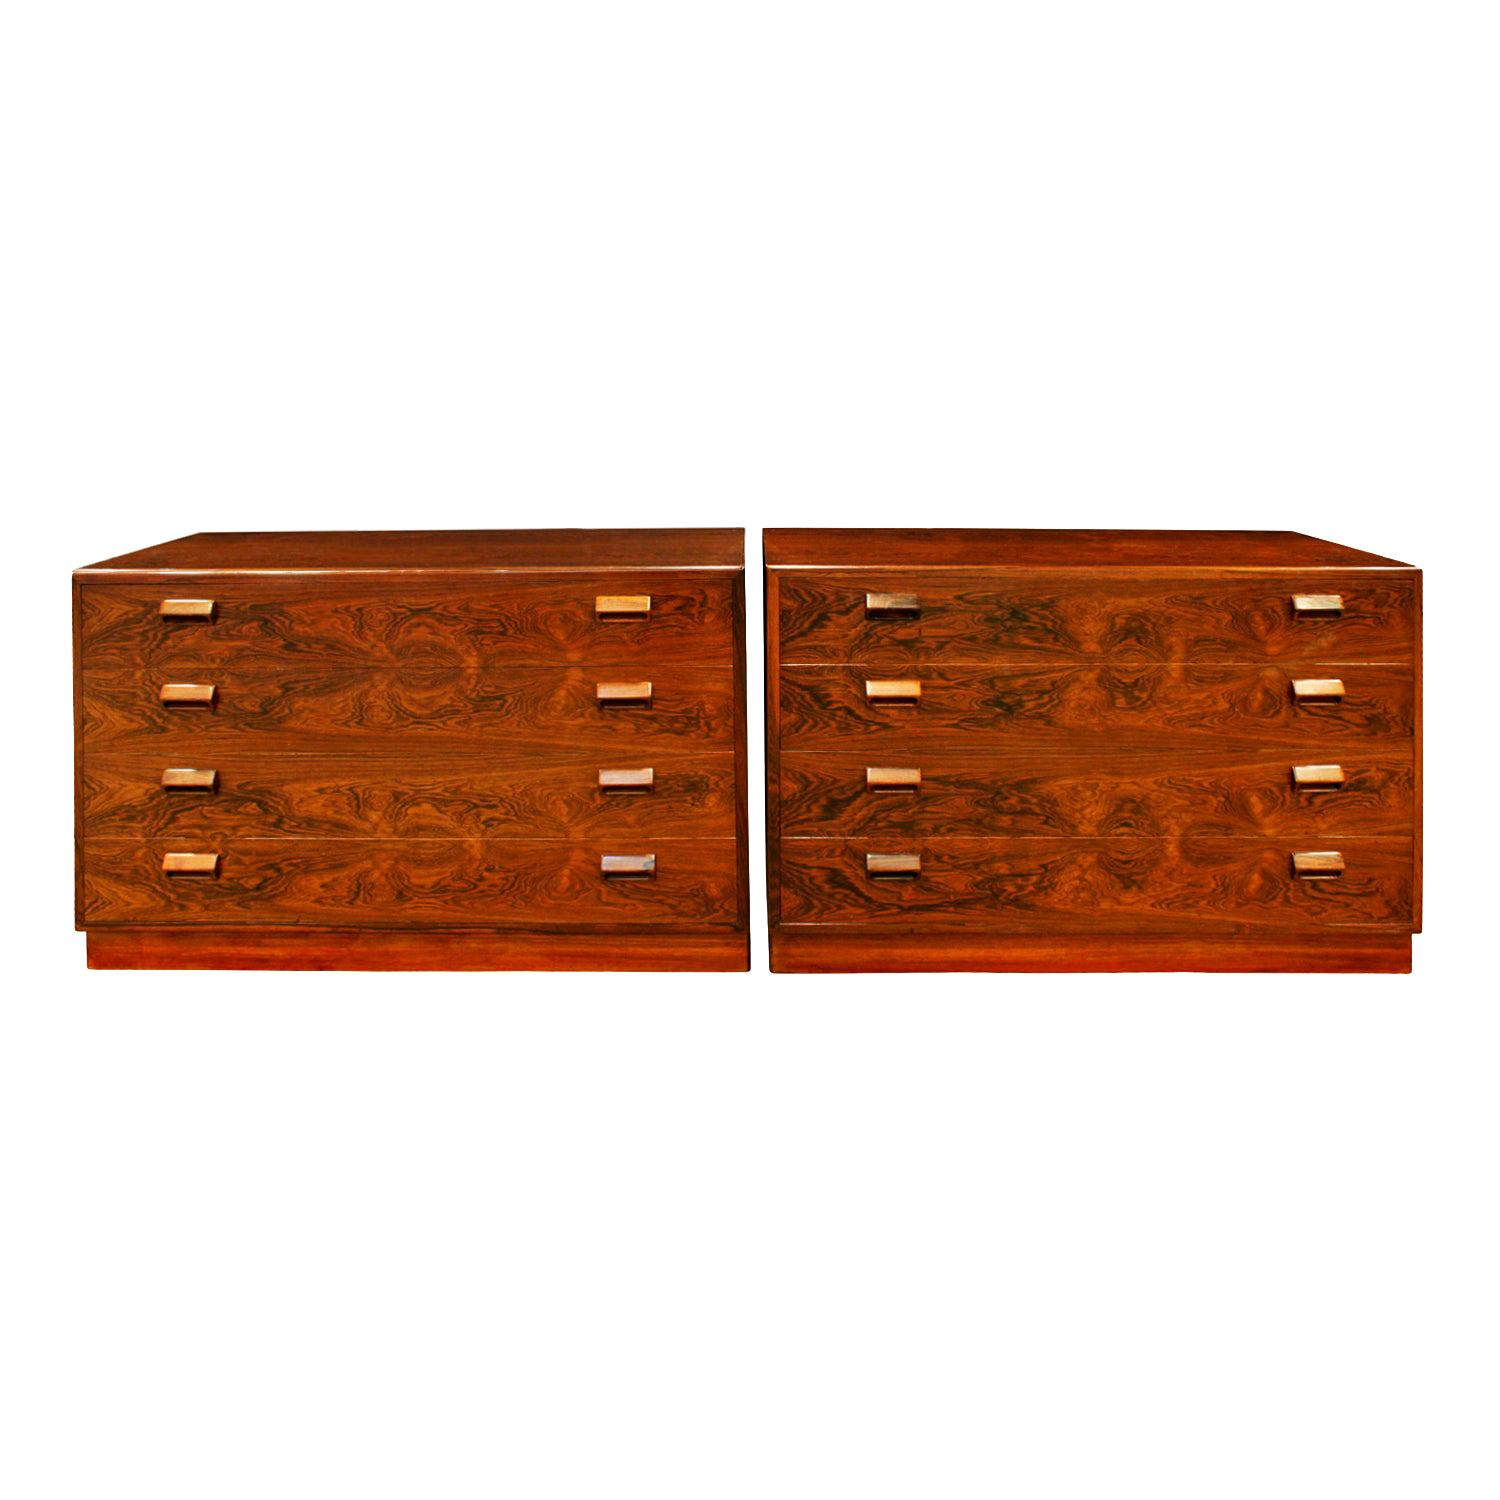 Hey Möbel Antique Vintage Mid Century And Modern Furniture 518 900 For